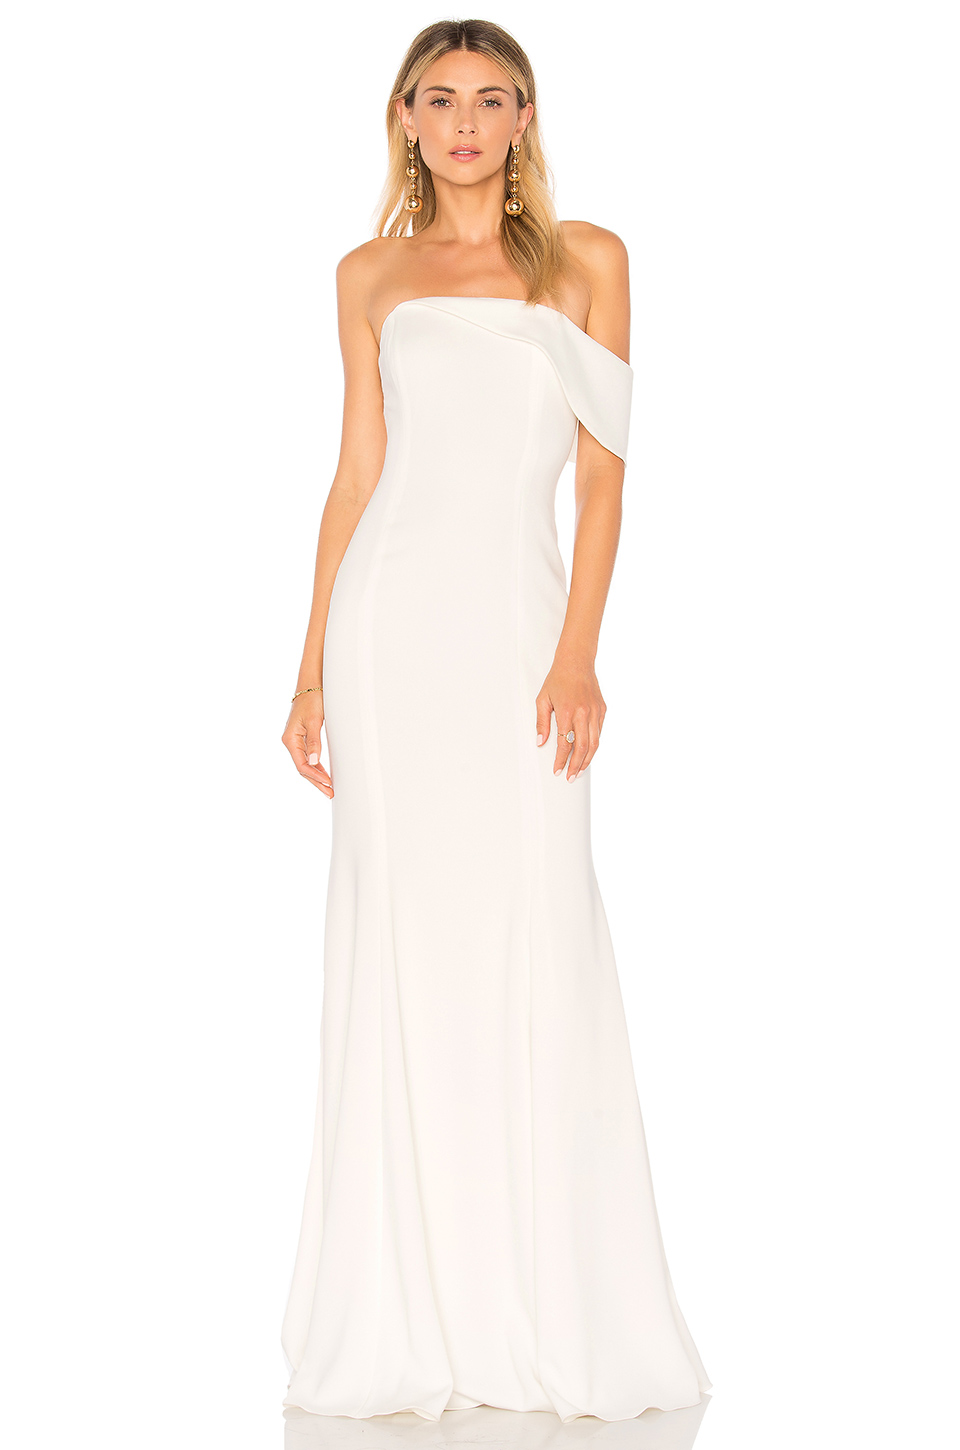 SEAWORTH GOWN BY JAY GODFREY, $426 AT REVOLVE.COM